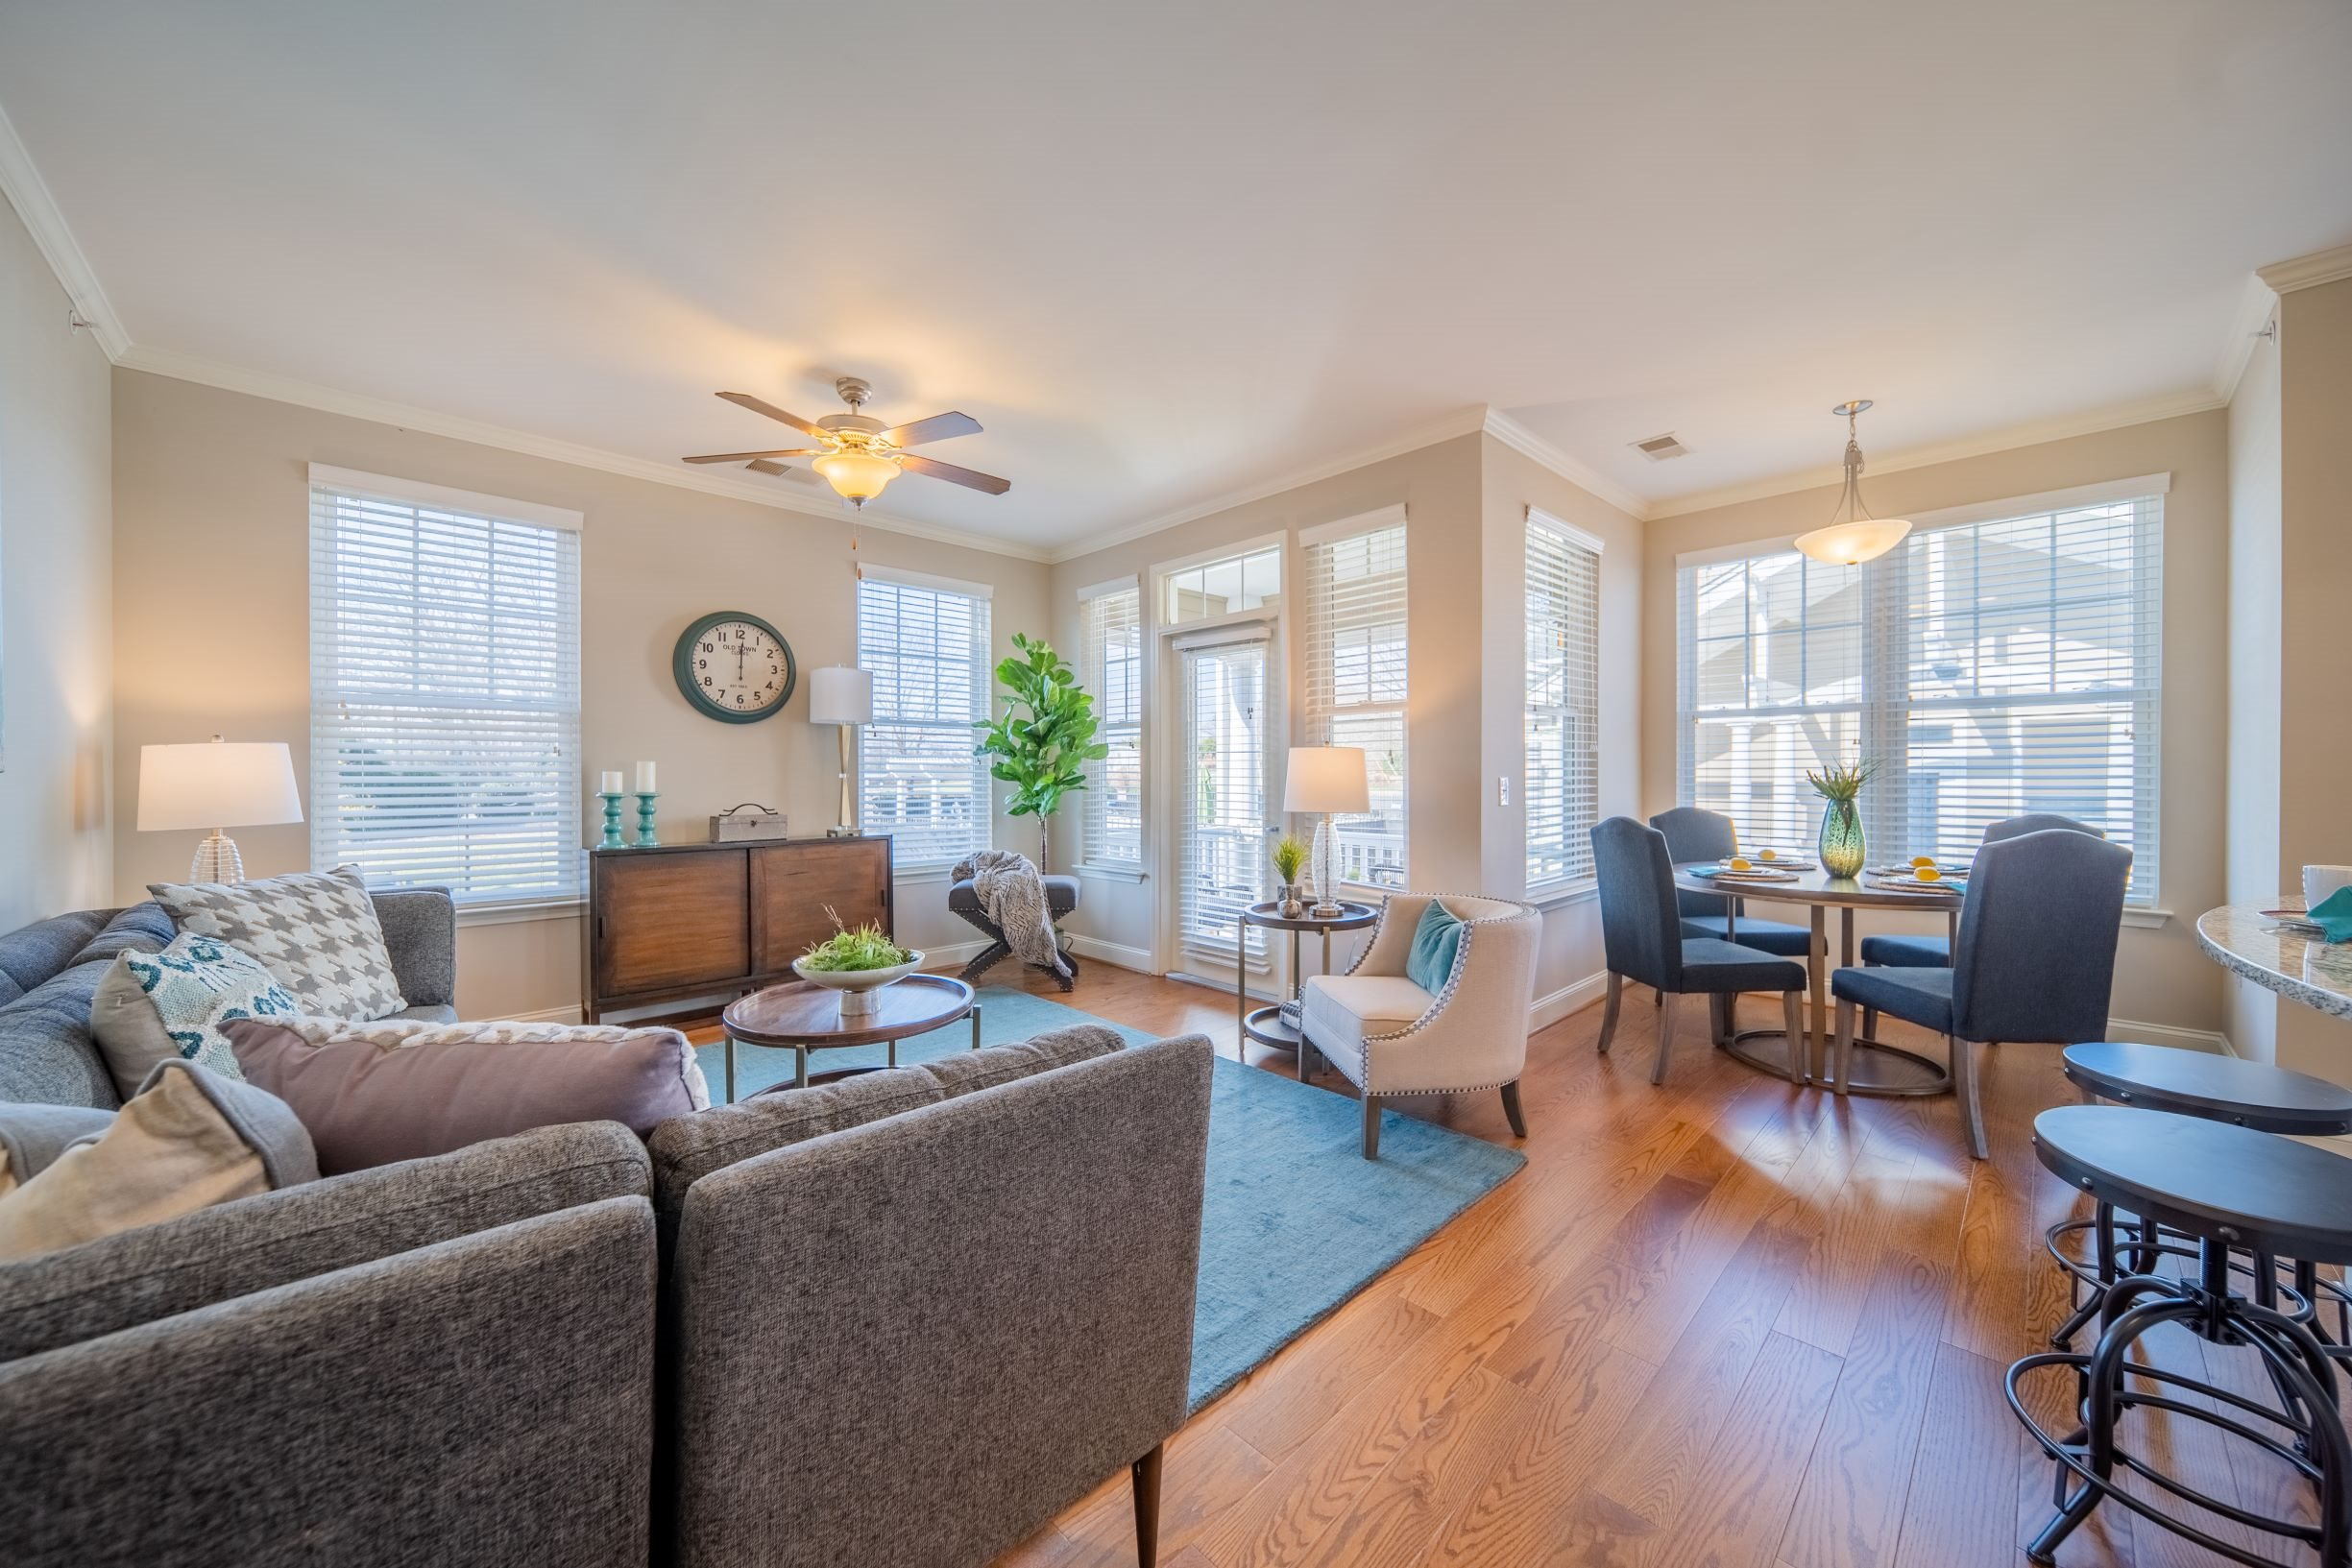 Open-concept floor plan at Piedmont Place in Greensboro, NC